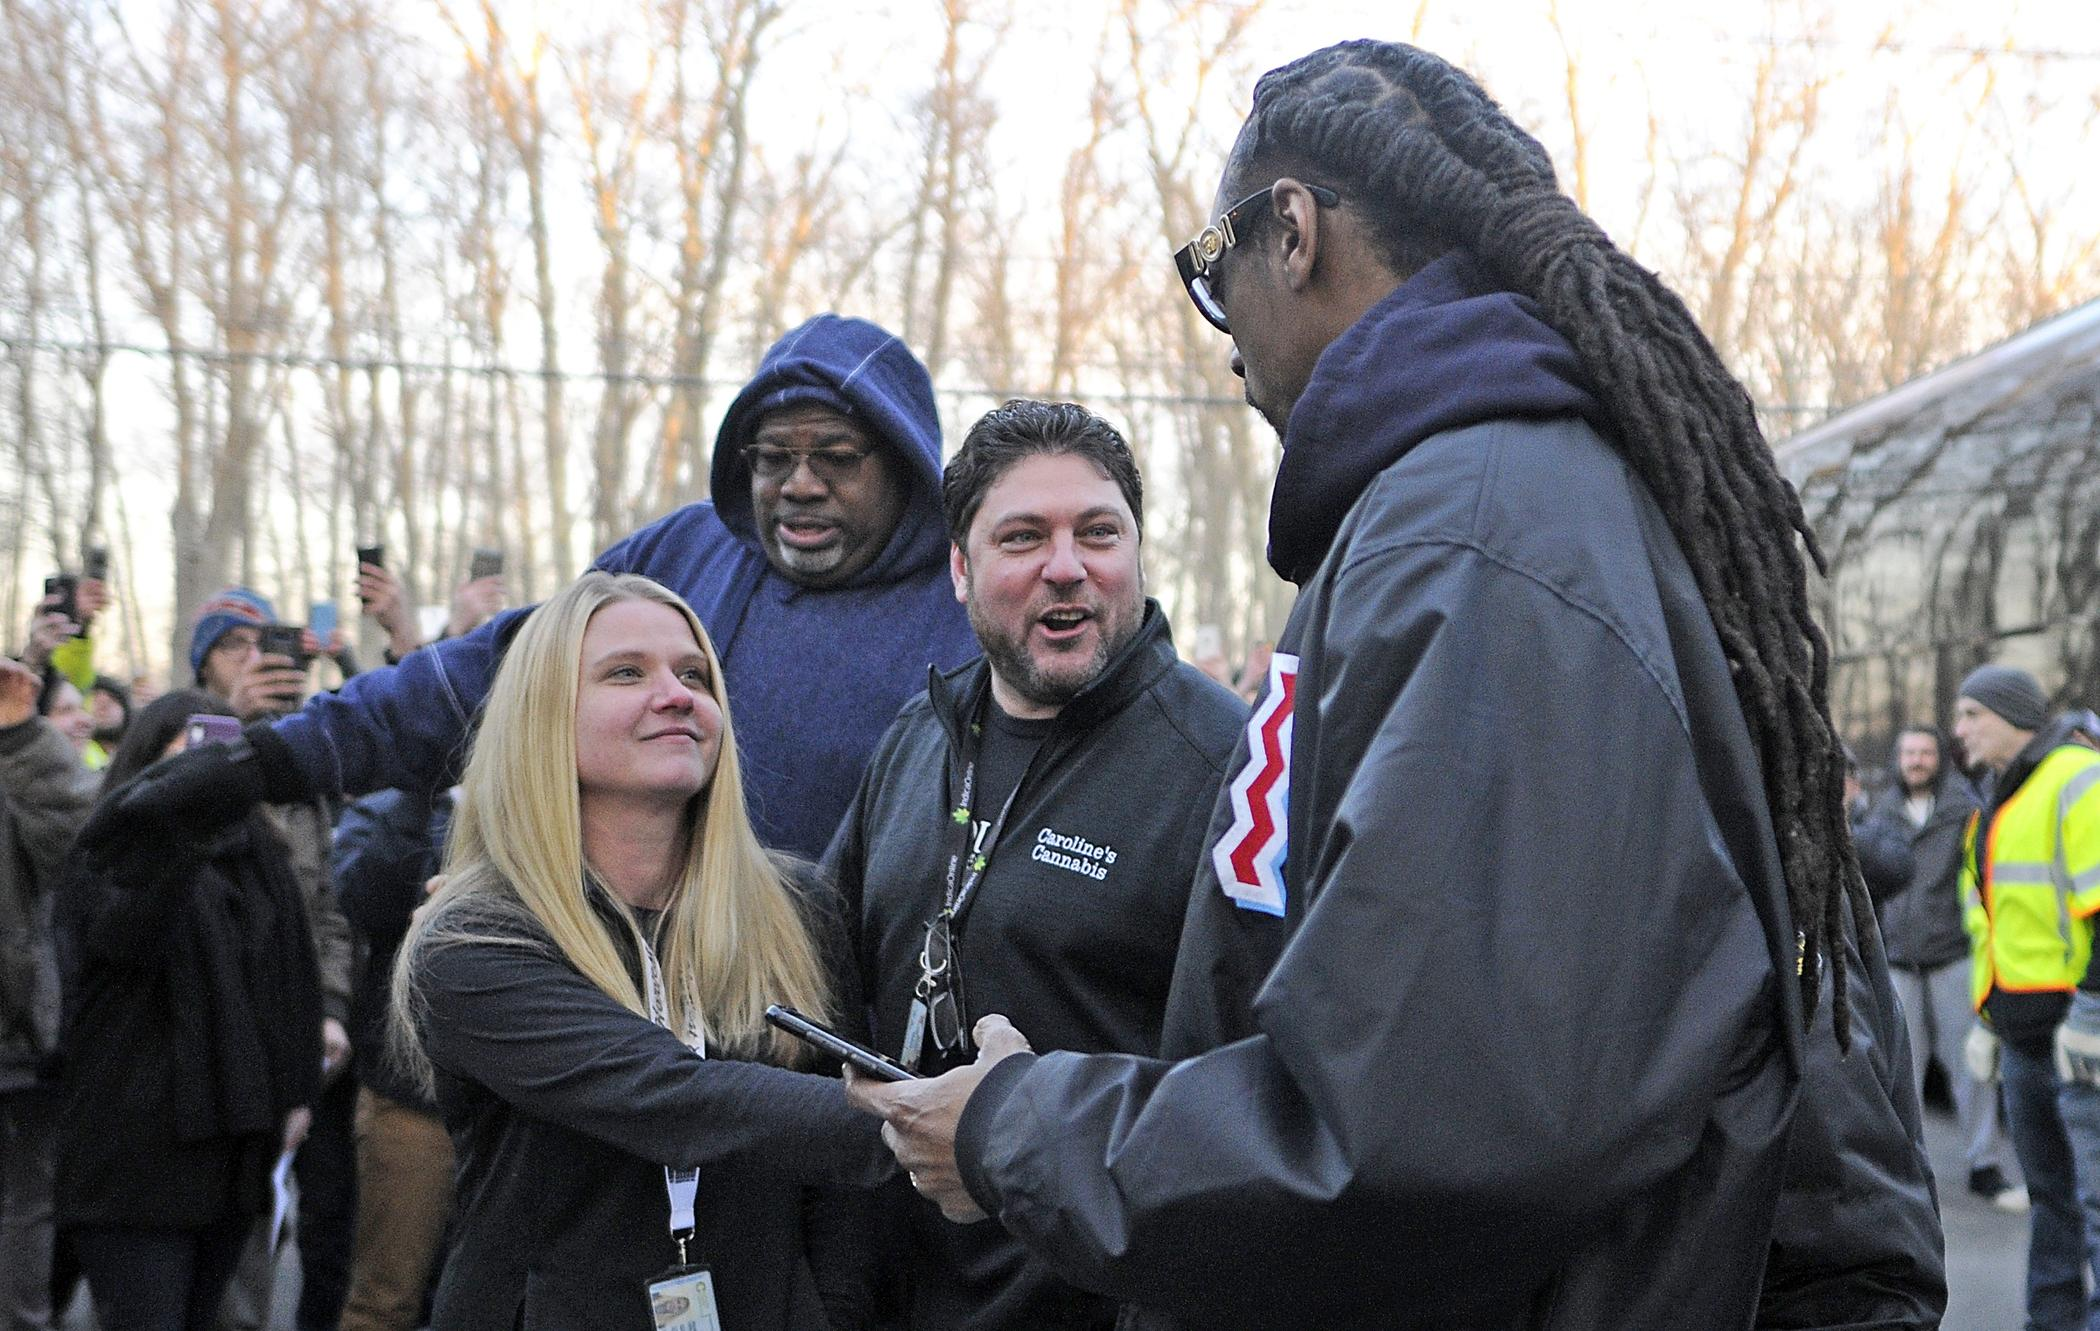 Snoop Dogg visits Caroline's Cannabis shop in Uxbridge – News – Milford Daily News